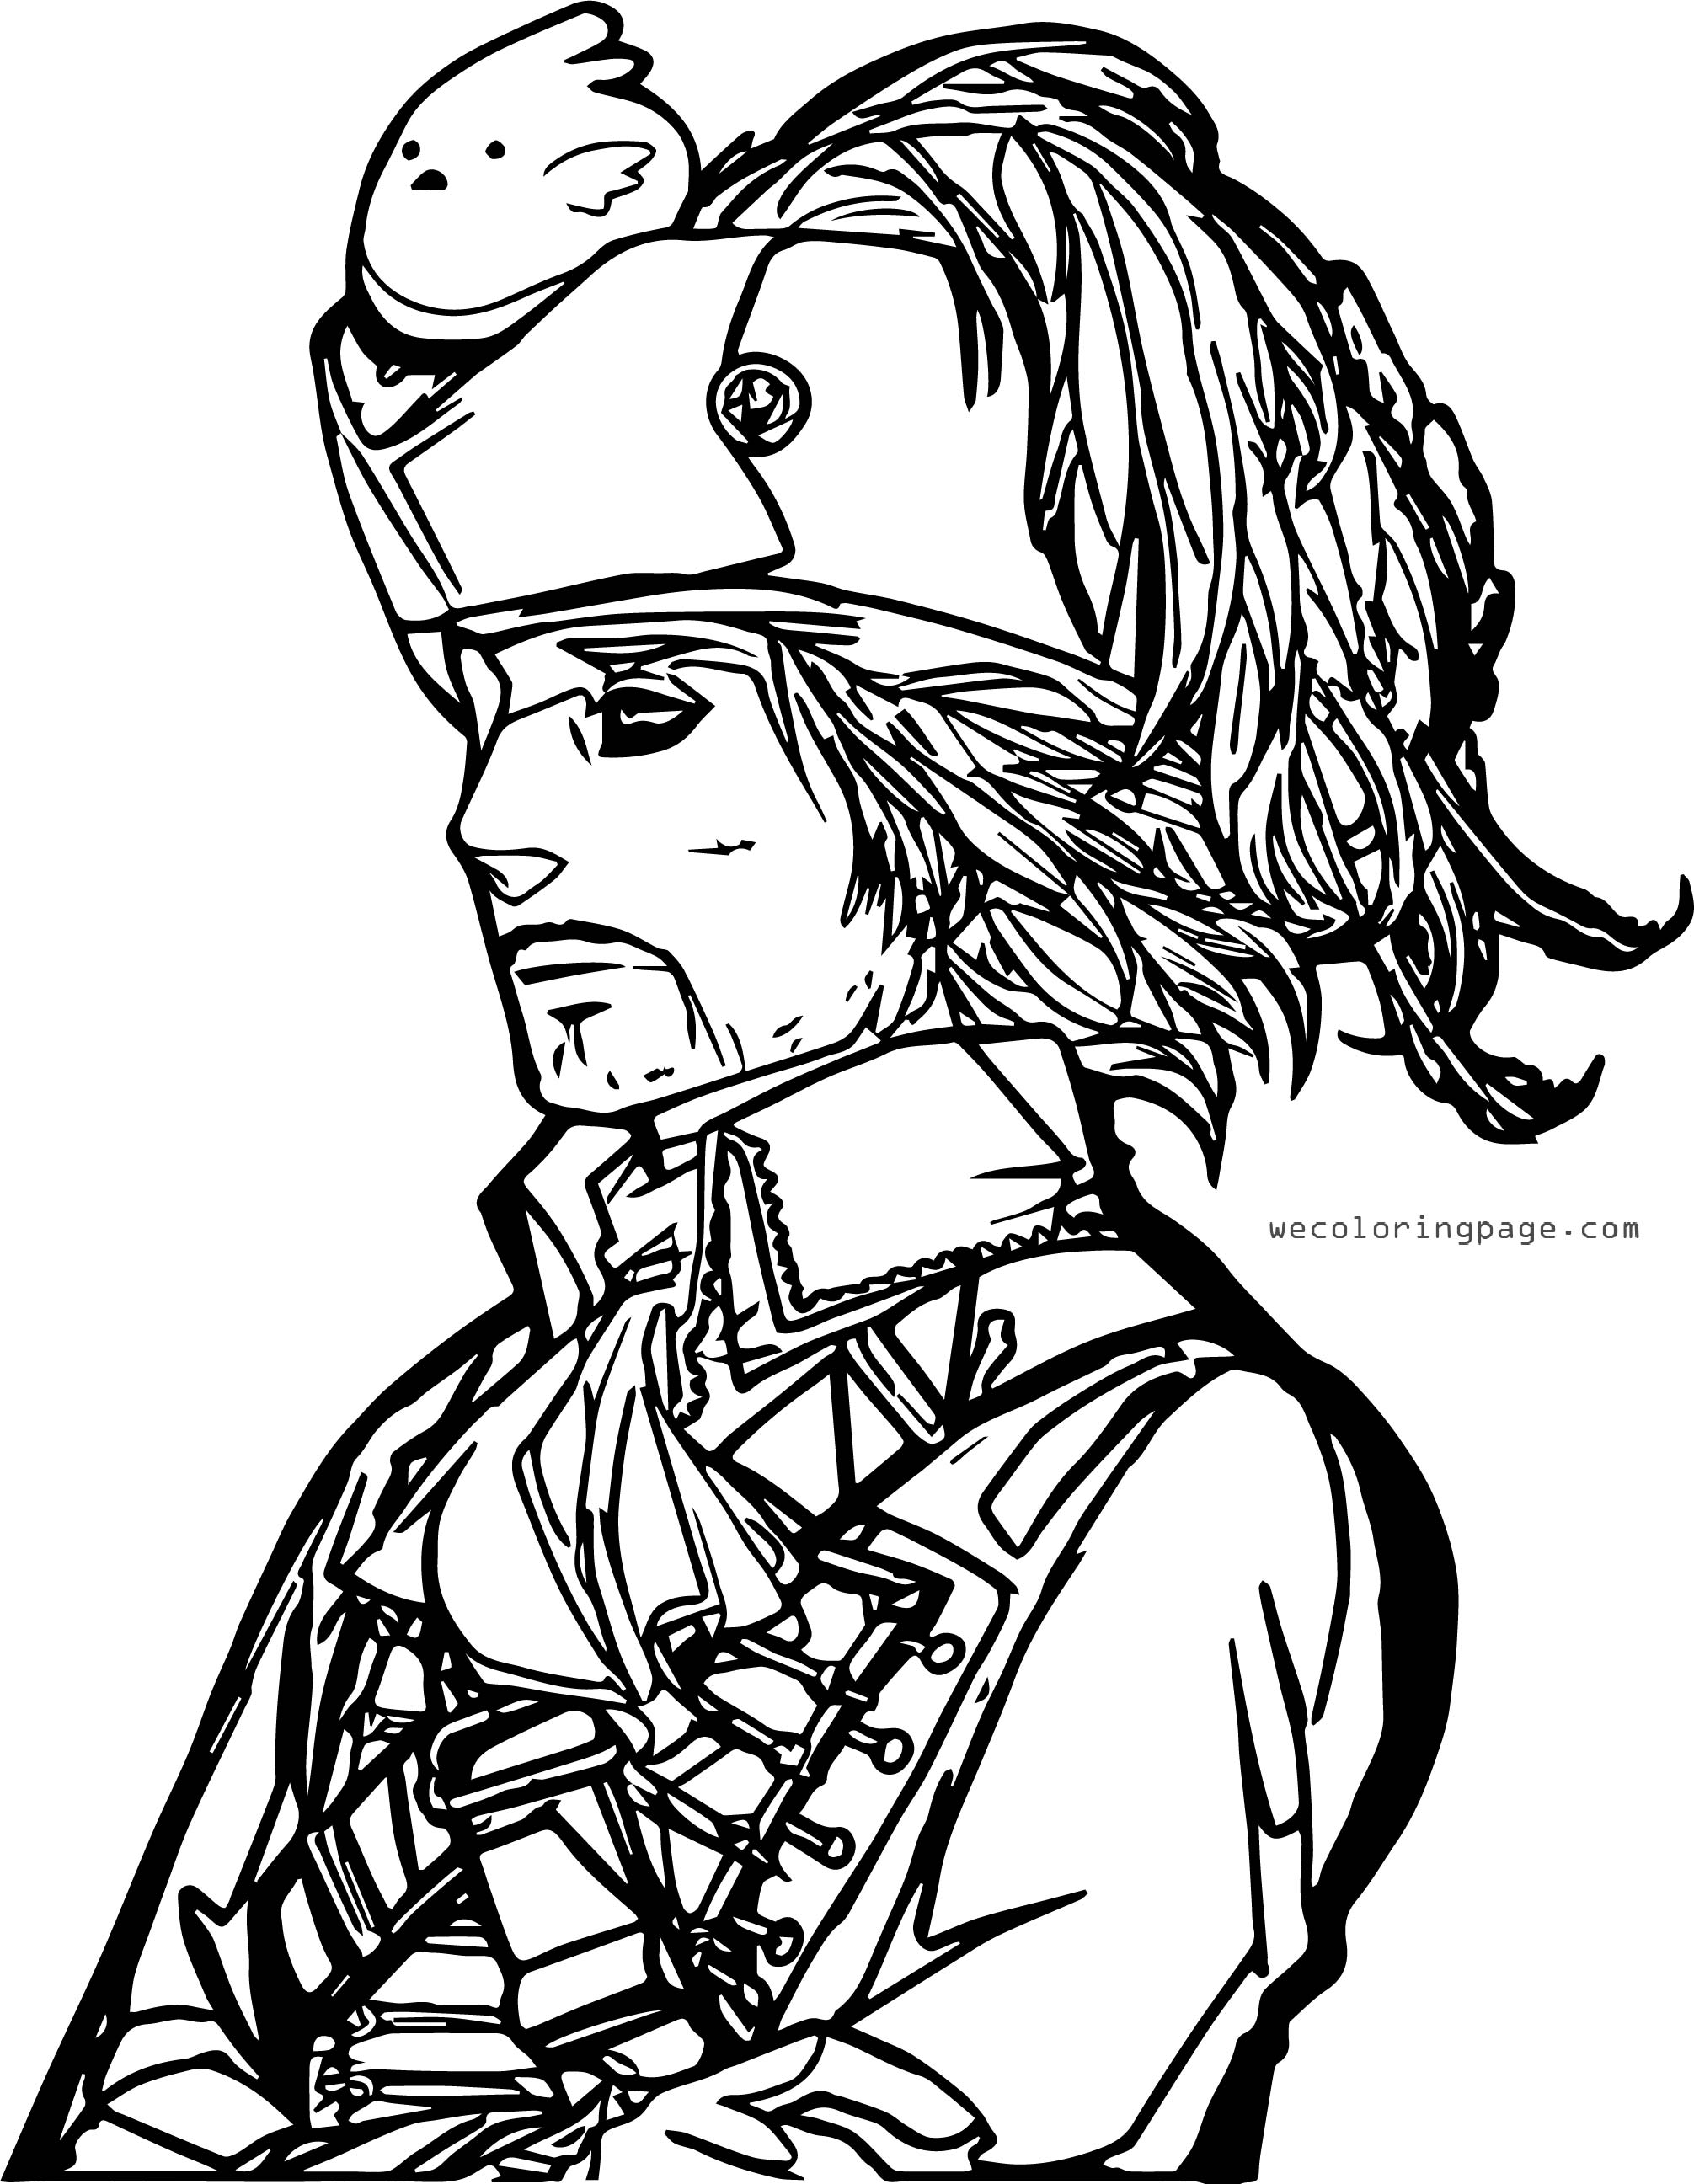 Captain Manga Man Coloring Page